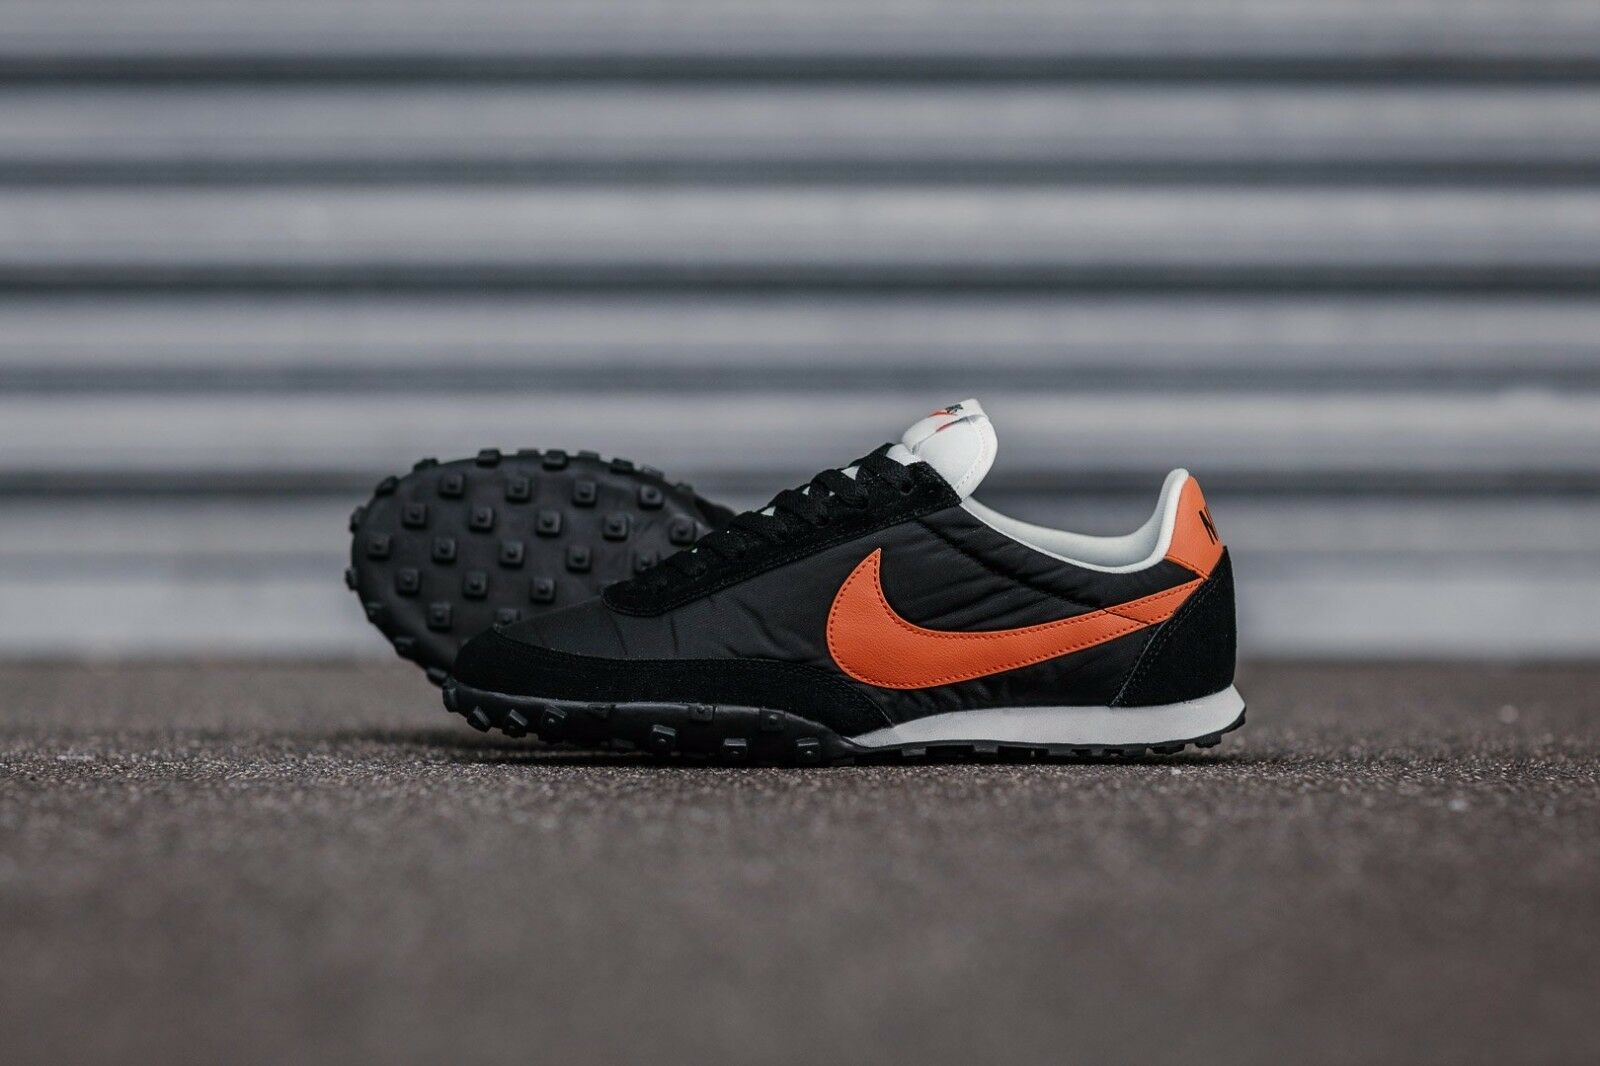 nike gaufre racer 17 Noir  taille orange taille  8,5.876255-003.internationaliste d16bc3